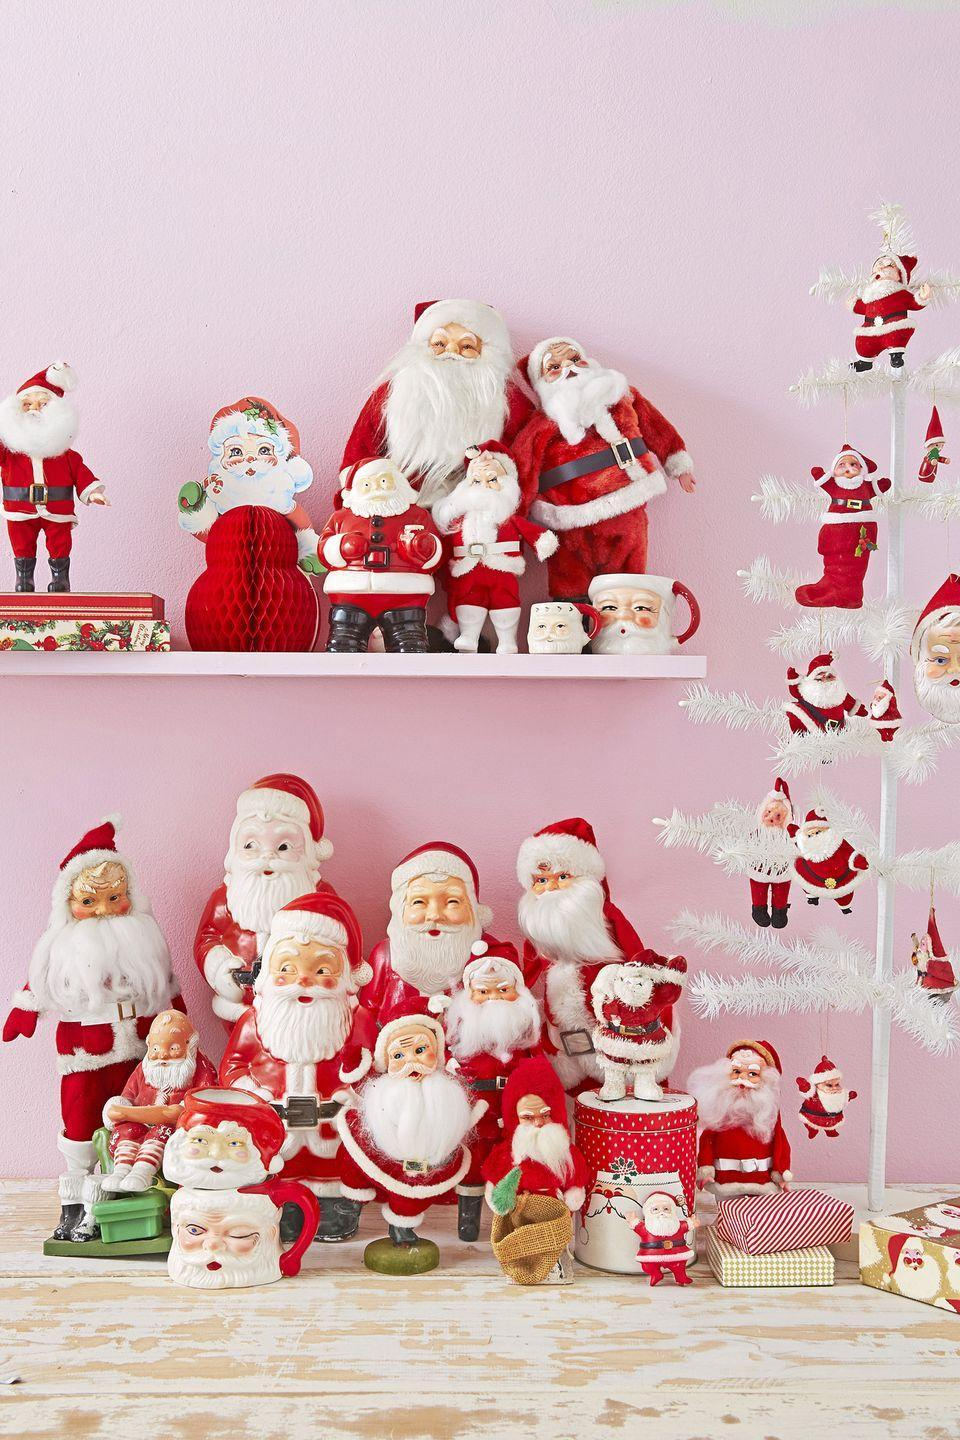 """<p>Even if you haven't collected Santa figurines over the years, this is the perfect excuse to begin. A family of Saint Nicks—no matter how mismatched—will look beautiful sitting atop your mantel or bureau.</p><p><a class=""""link rapid-noclick-resp"""" href=""""https://www.amazon.com/s/ref=nb_sb_noss_2?url=search-alias%3Daps&field-keywords=santa+figurine&tag=syn-yahoo-20&ascsubtag=%5Bartid%7C10050.g.1247%5Bsrc%7Cyahoo-us"""" rel=""""nofollow noopener"""" target=""""_blank"""" data-ylk=""""slk:SHOP SANTA FIGURINES"""">SHOP SANTA FIGURINES</a></p>"""